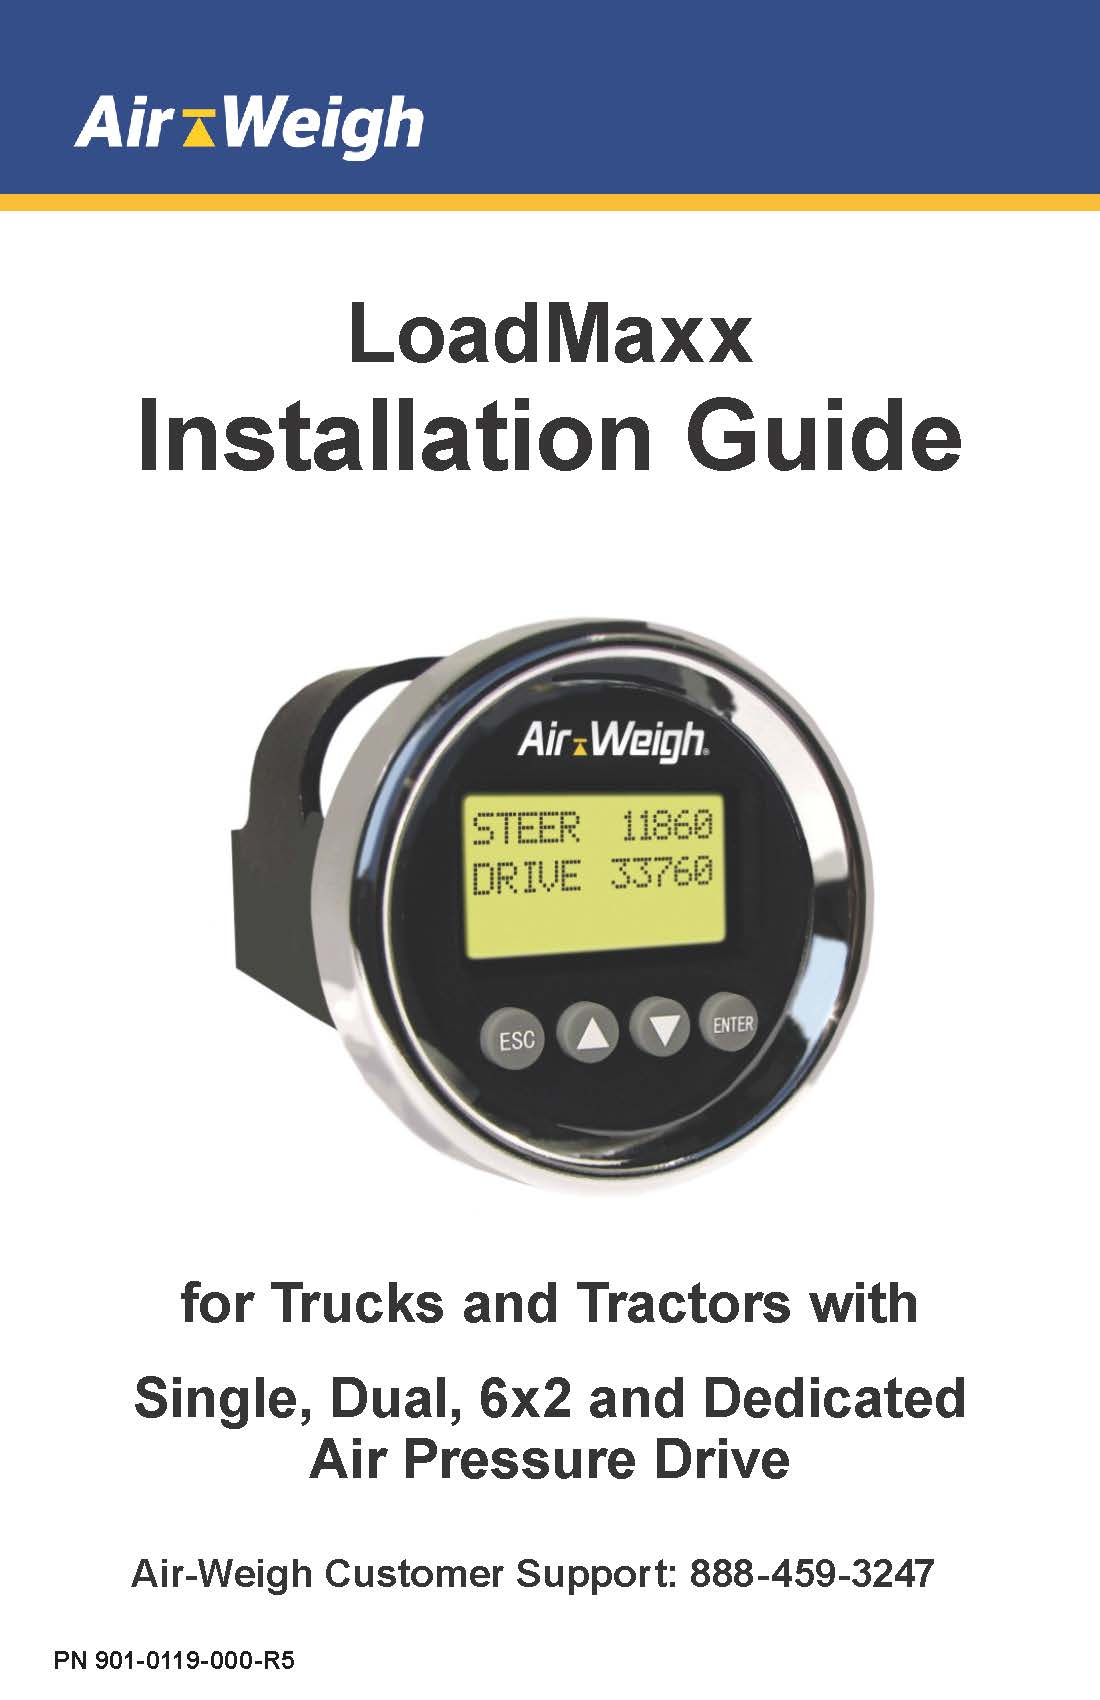 Installation Guide for Trucks and Tractors with Air Pressure Drive